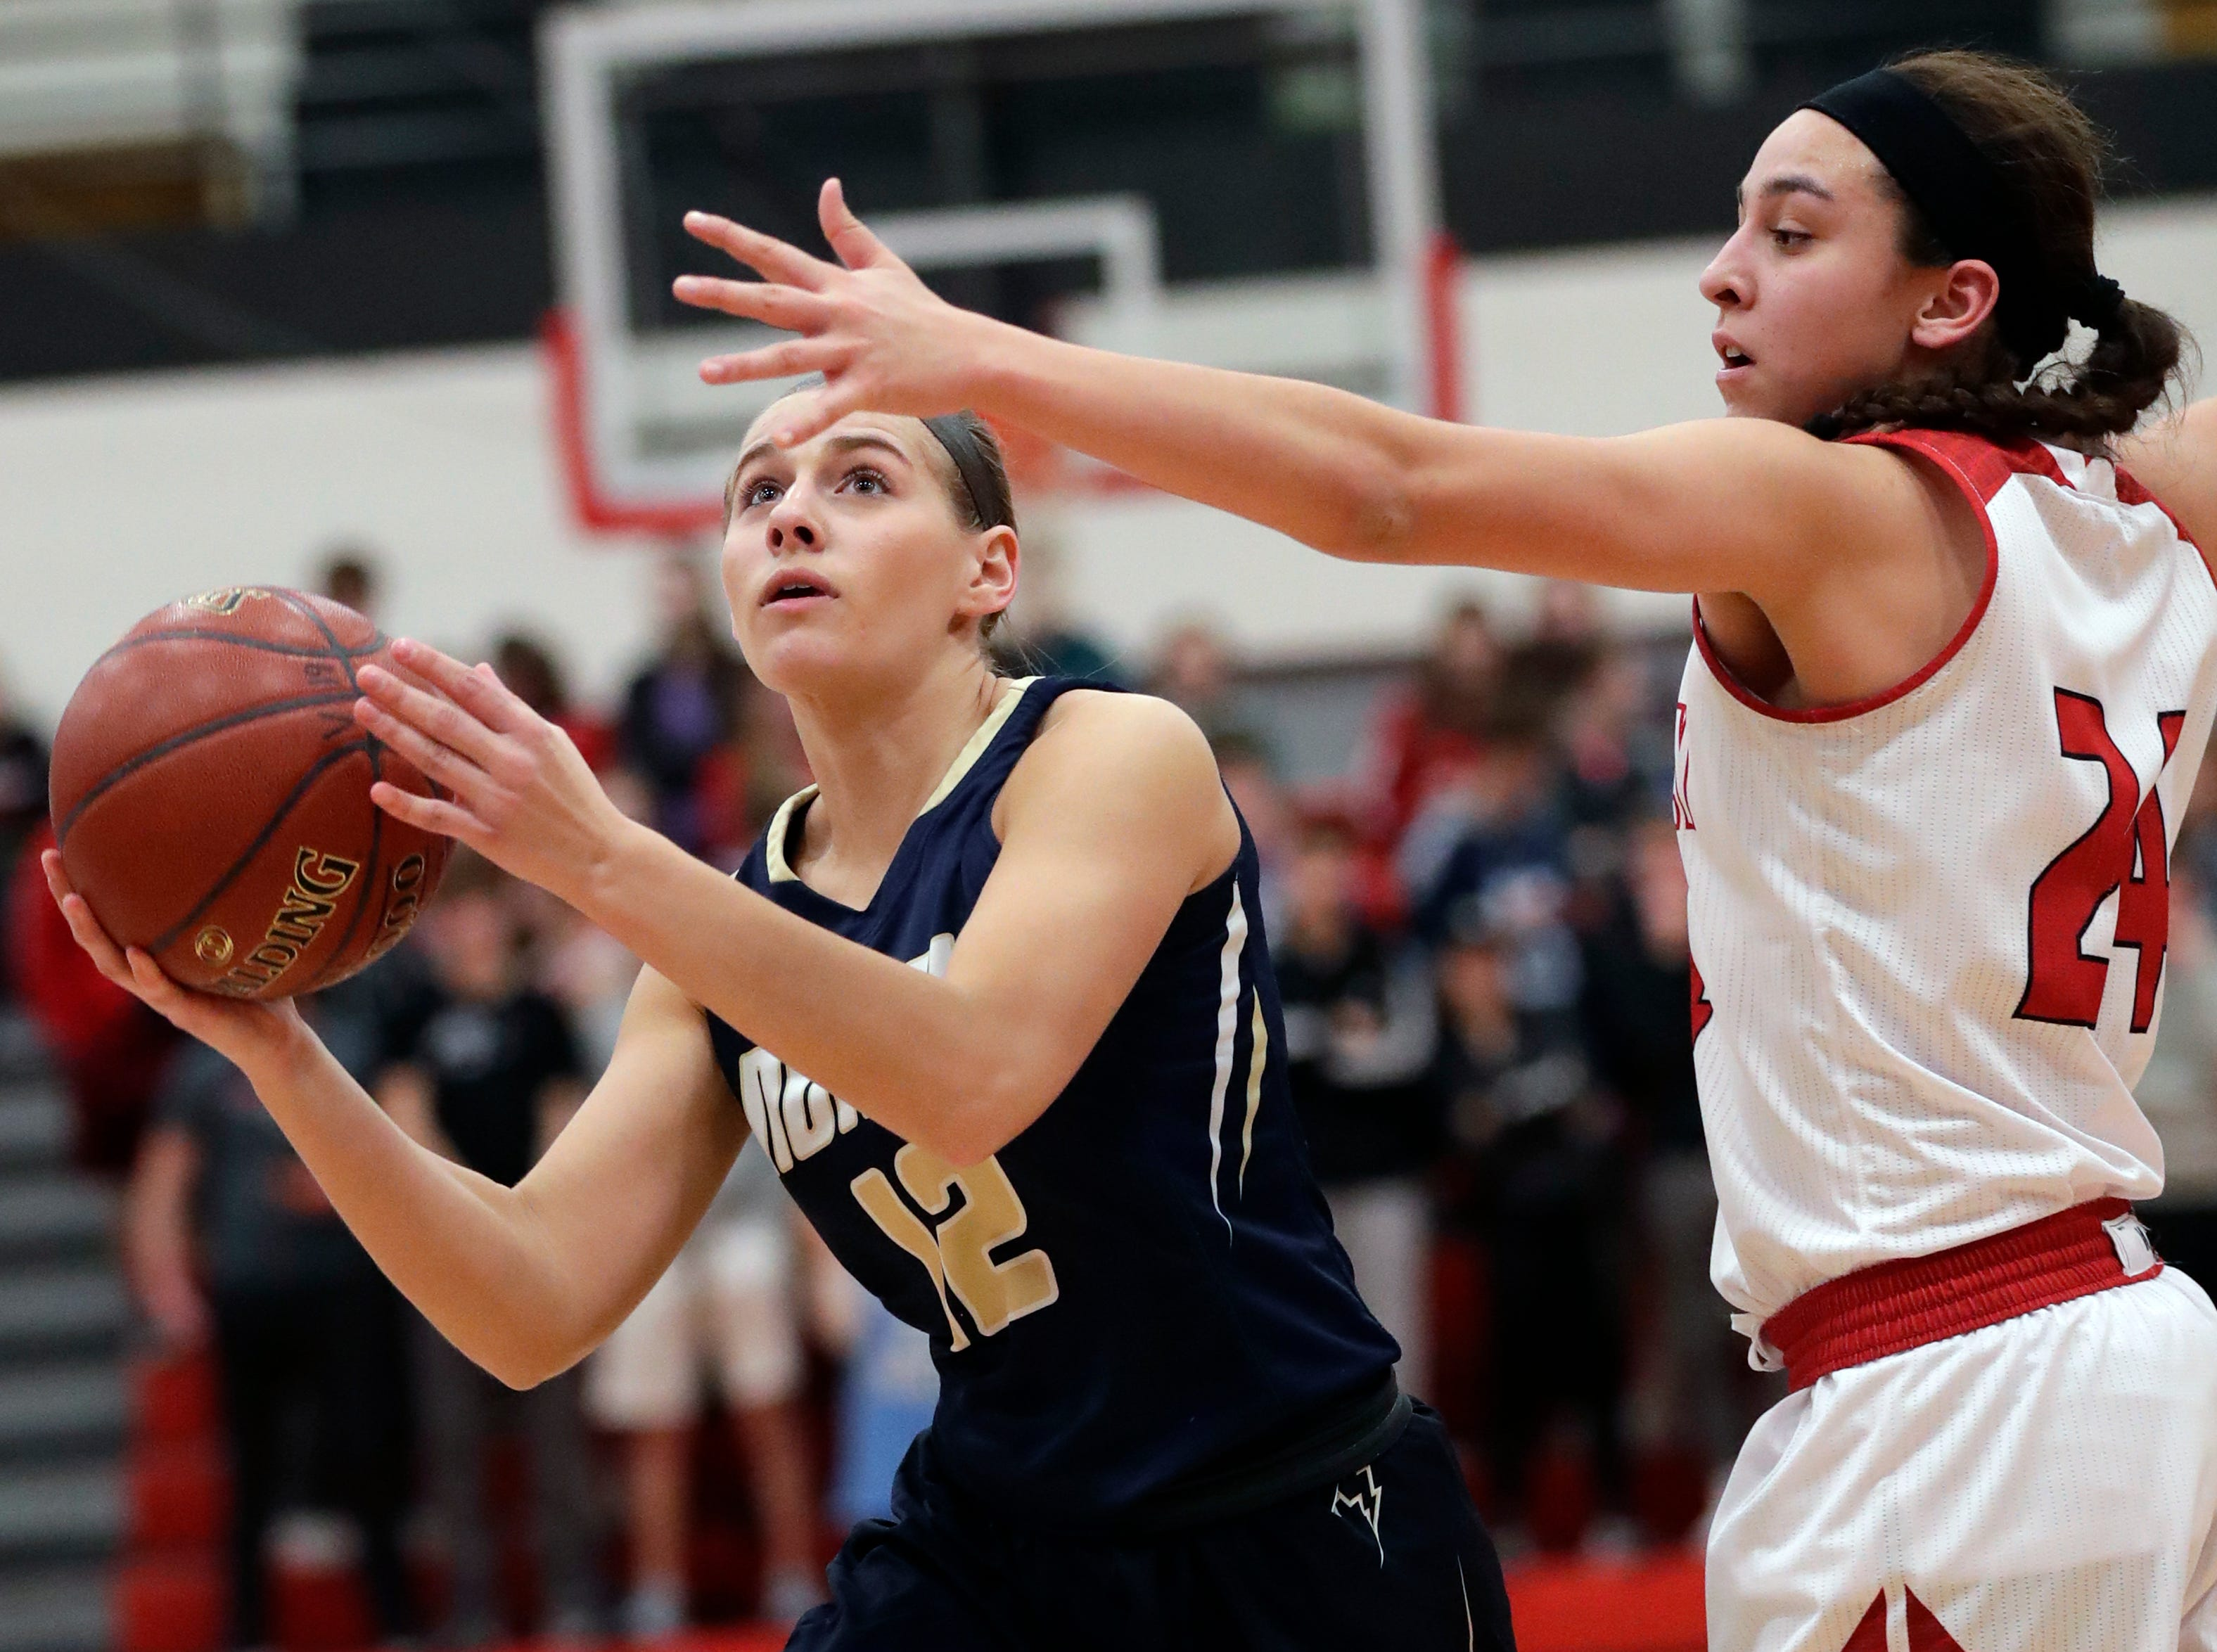 Appleton North High School's Teagan Prusinski (12) puts up a shot against Kimberly High School's Shea Dechant (24) during their girls basketball game Monday, February 11, 2019, in Kimberly, Wis. Dan Powers/USA TODAY NETWORK-Wisconsin